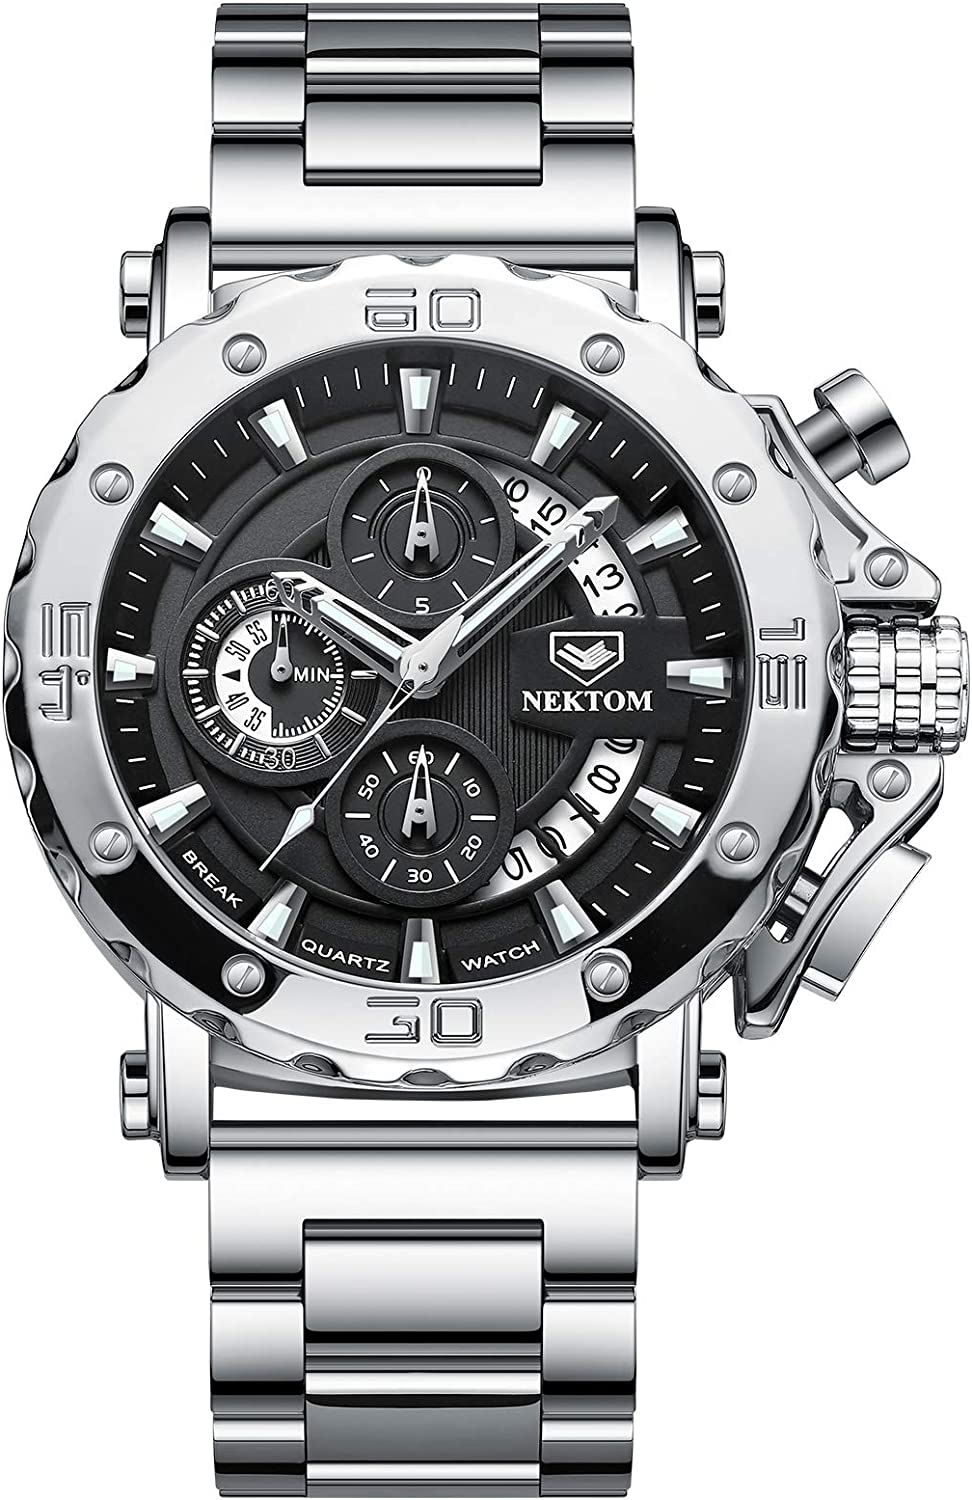 NEKTOM Discount mail order Military Watches for Men Large Workout Wa Topics on TV Watch Army Face